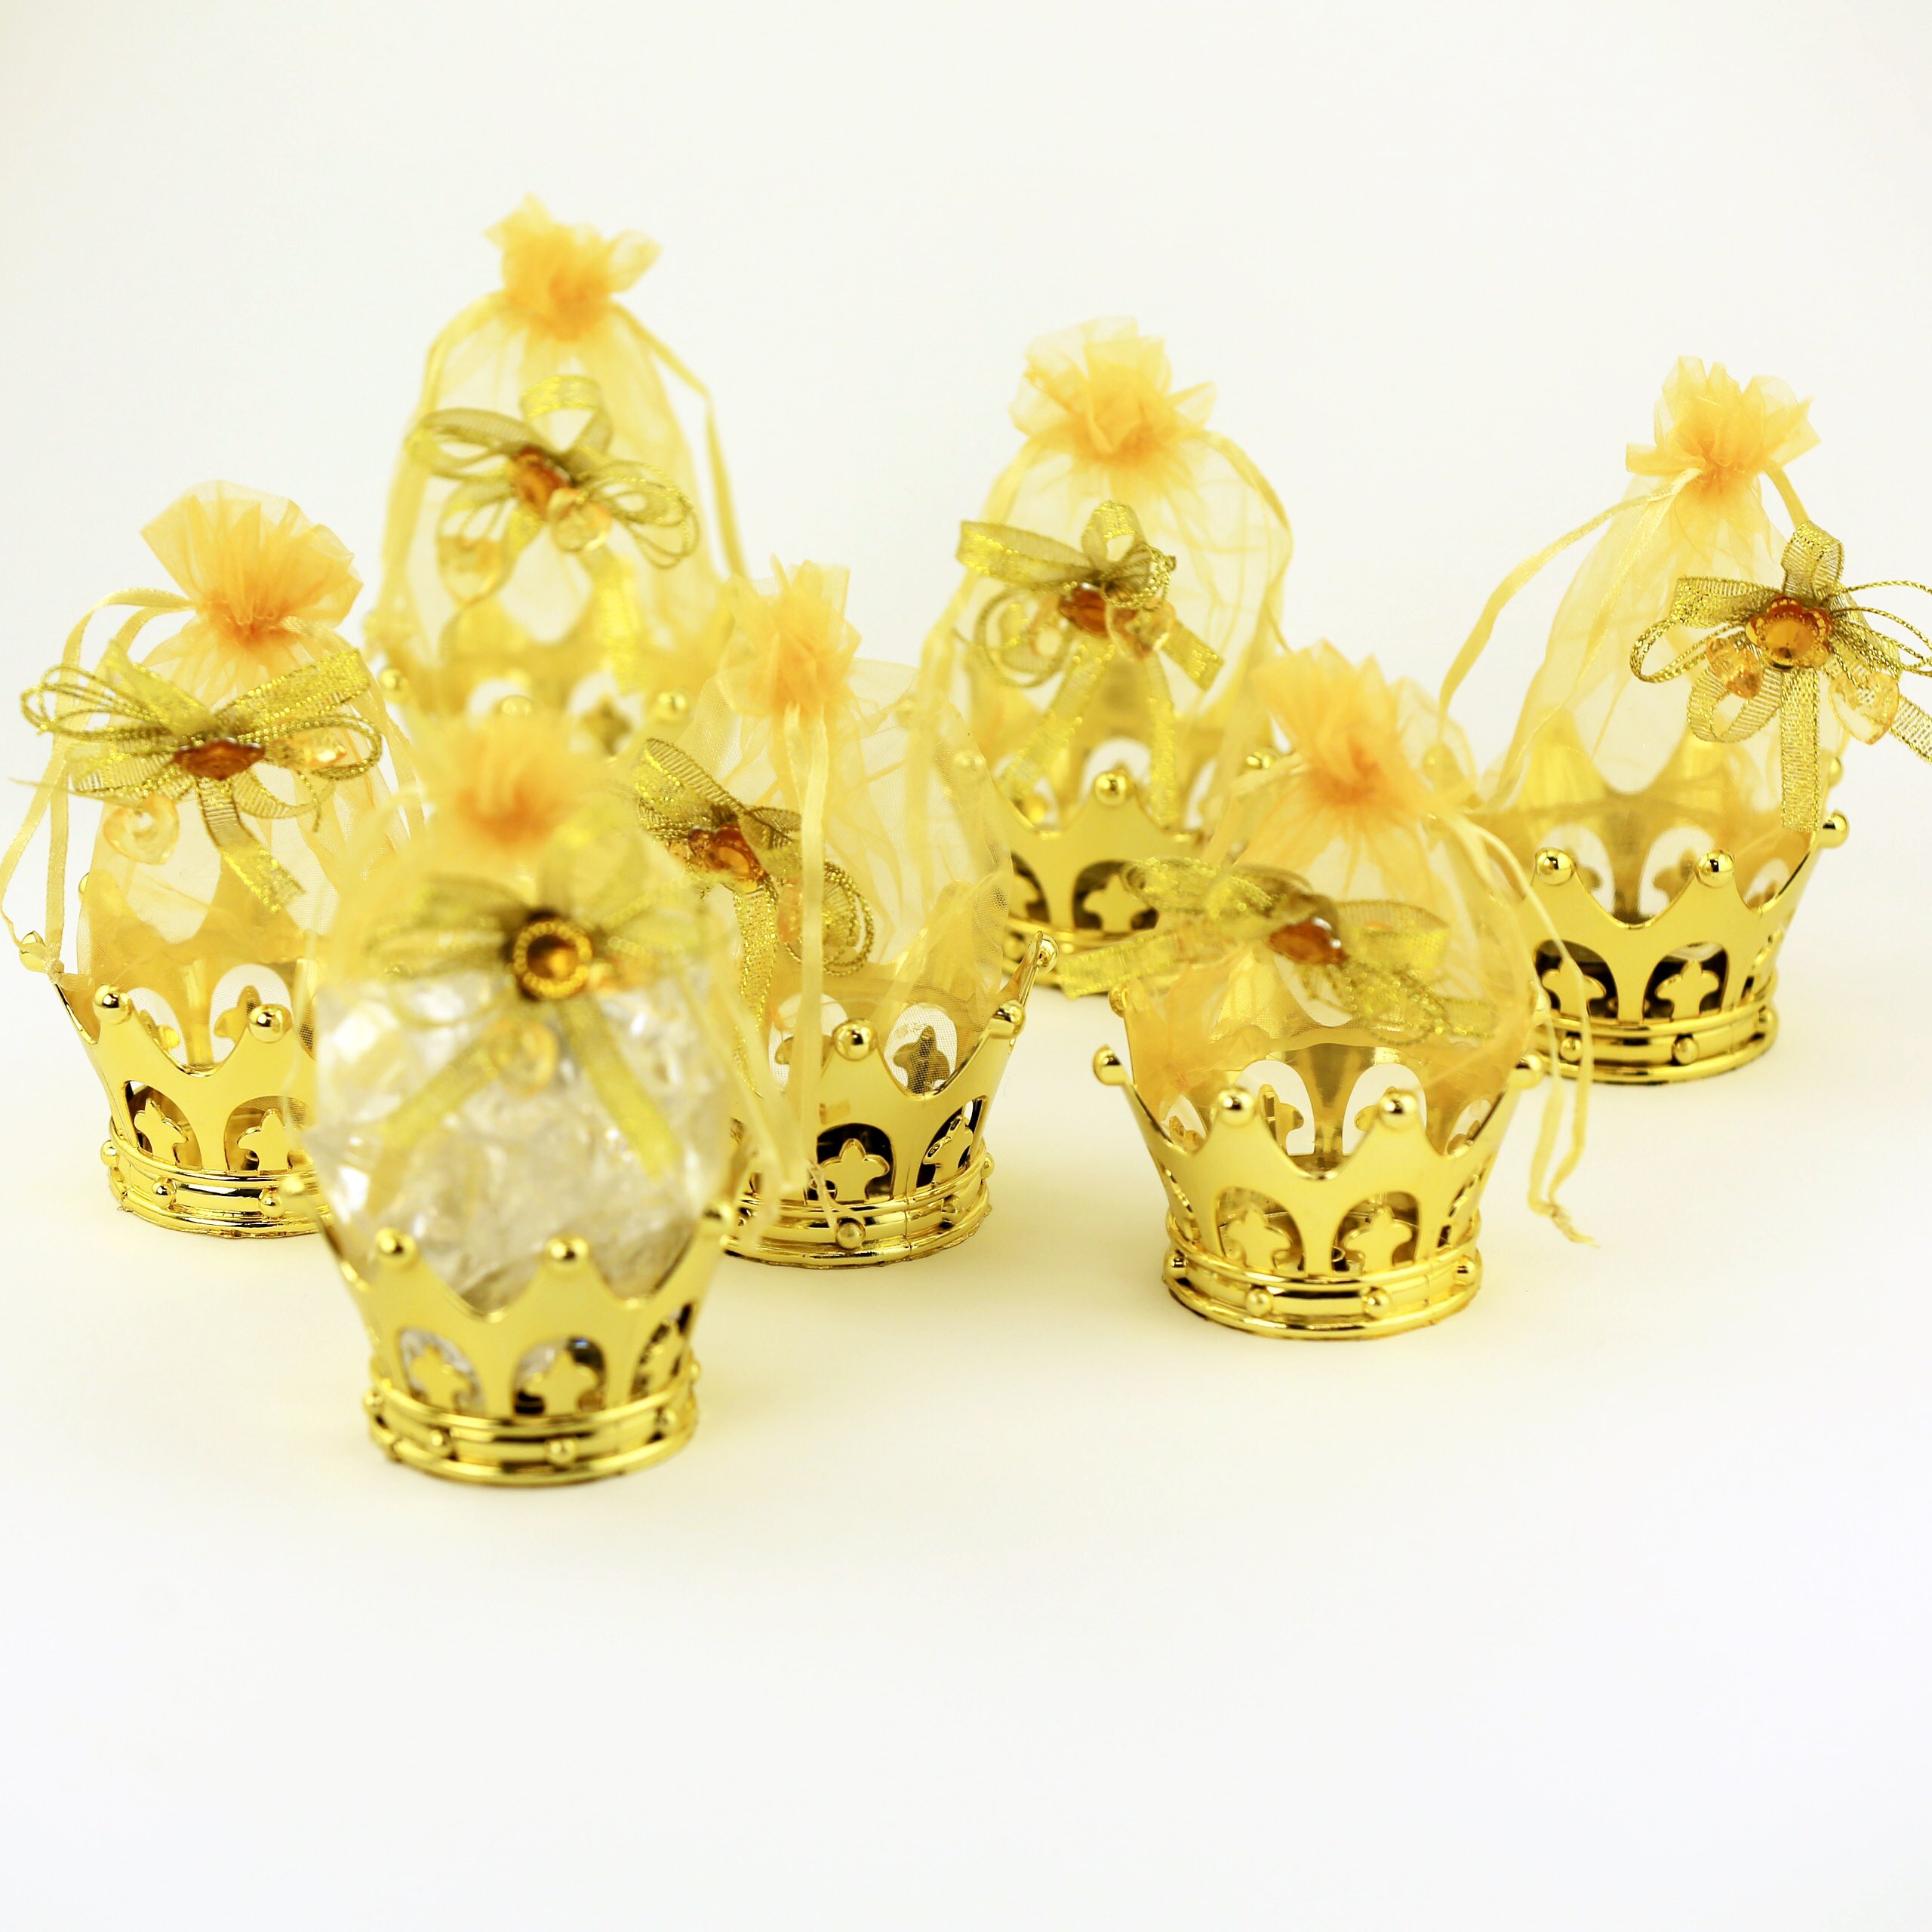 JCHB 12PC Gold Crown Fillable For Candies, Table Decorations, Party Favors, Party Candies Gifts, Baby Shower by JCHB